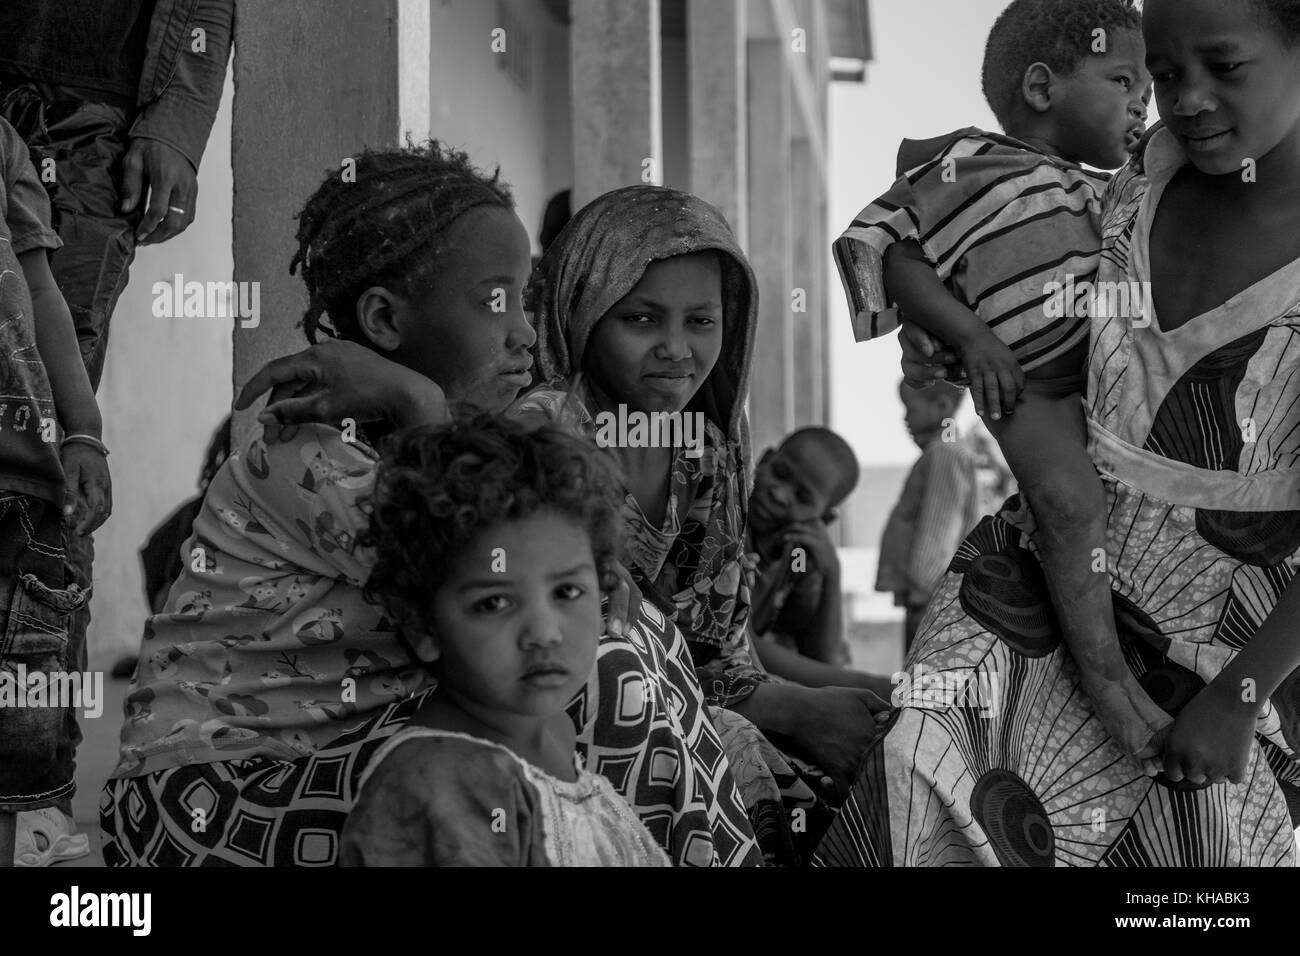 African children with strong expressions on their faces. Taken in Mali. - Stock Image